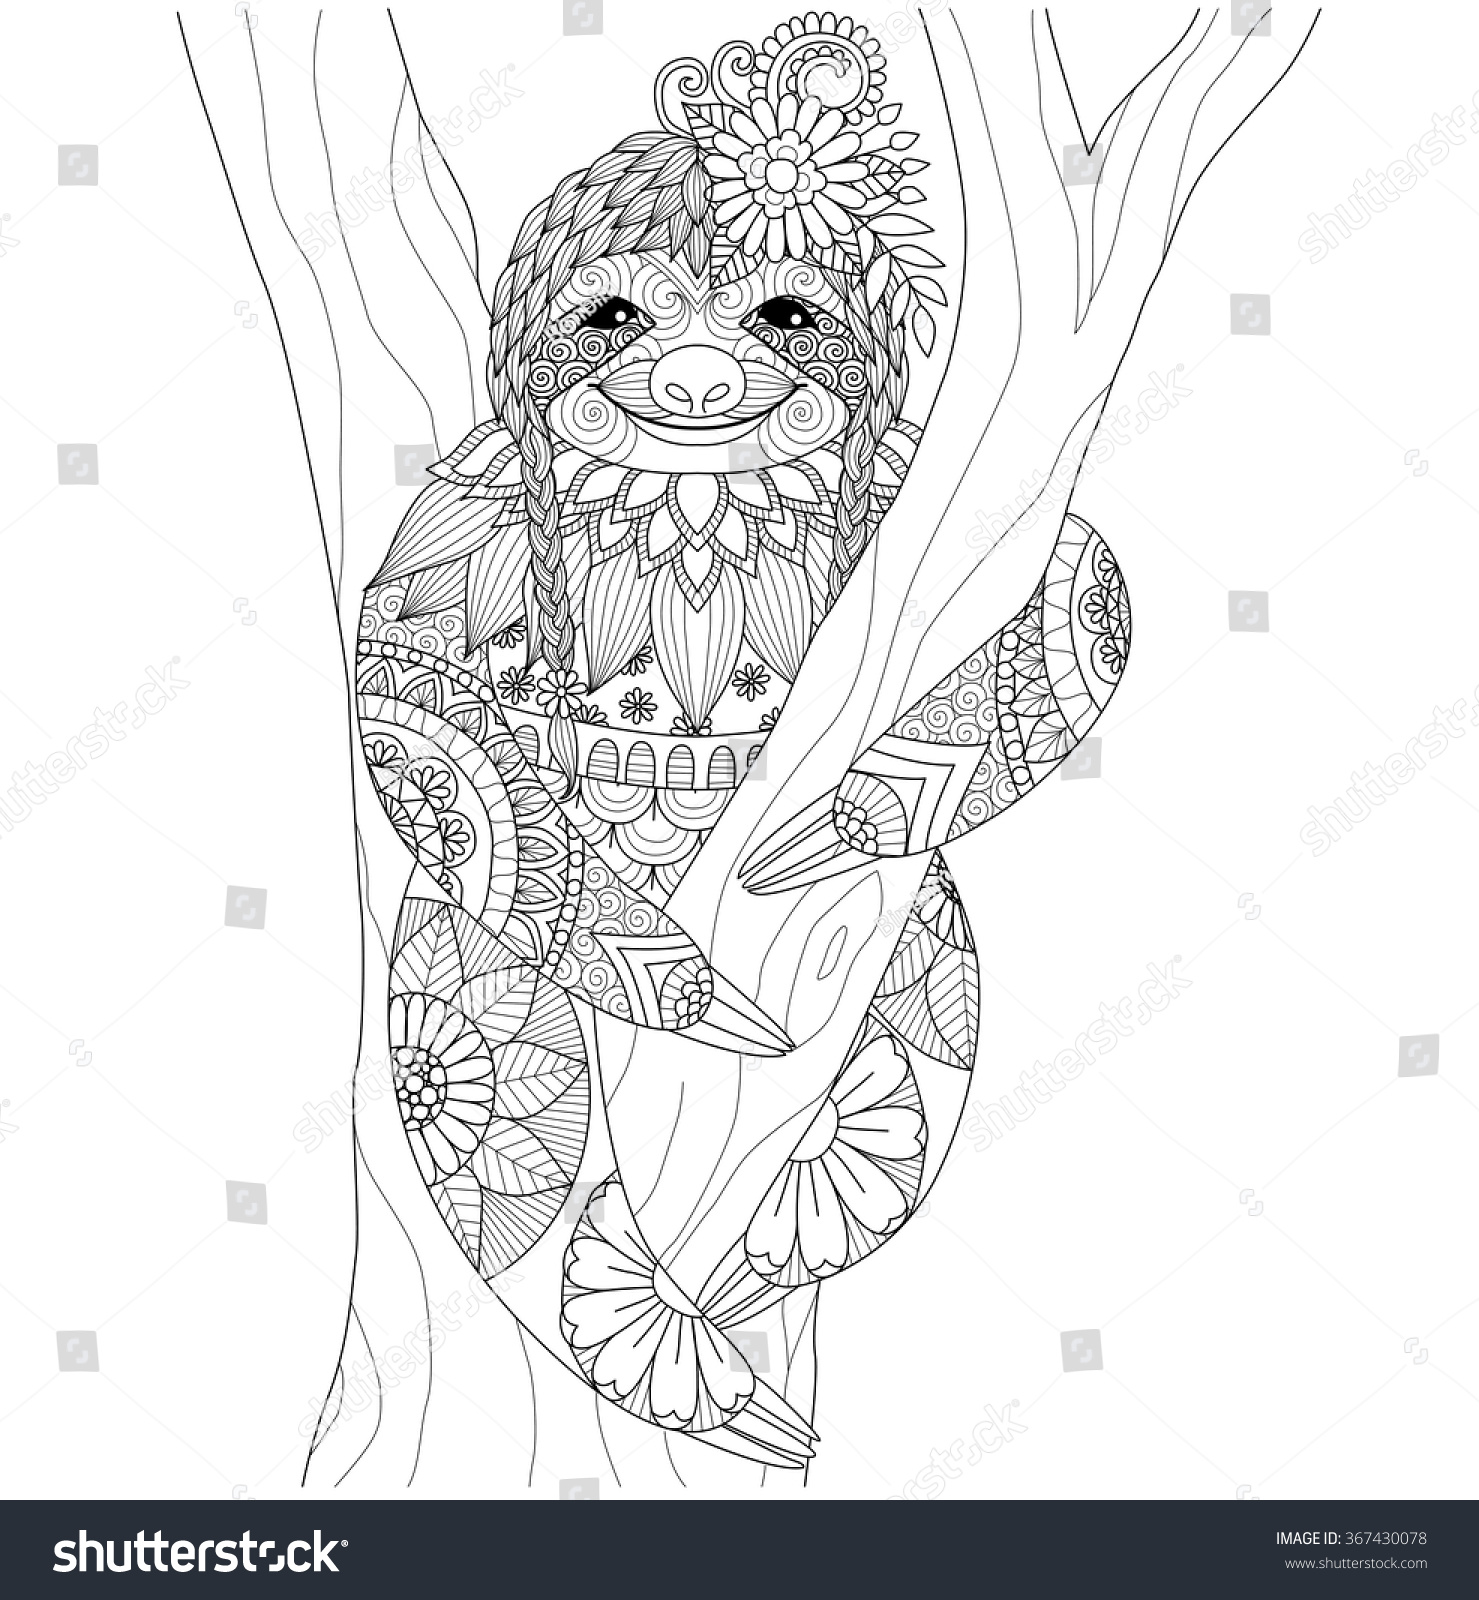 colouring books for adults in australia : Adults Colouring Books Australia Sloth Zentangle Design For Coloring Book For Adult And Other Decorations